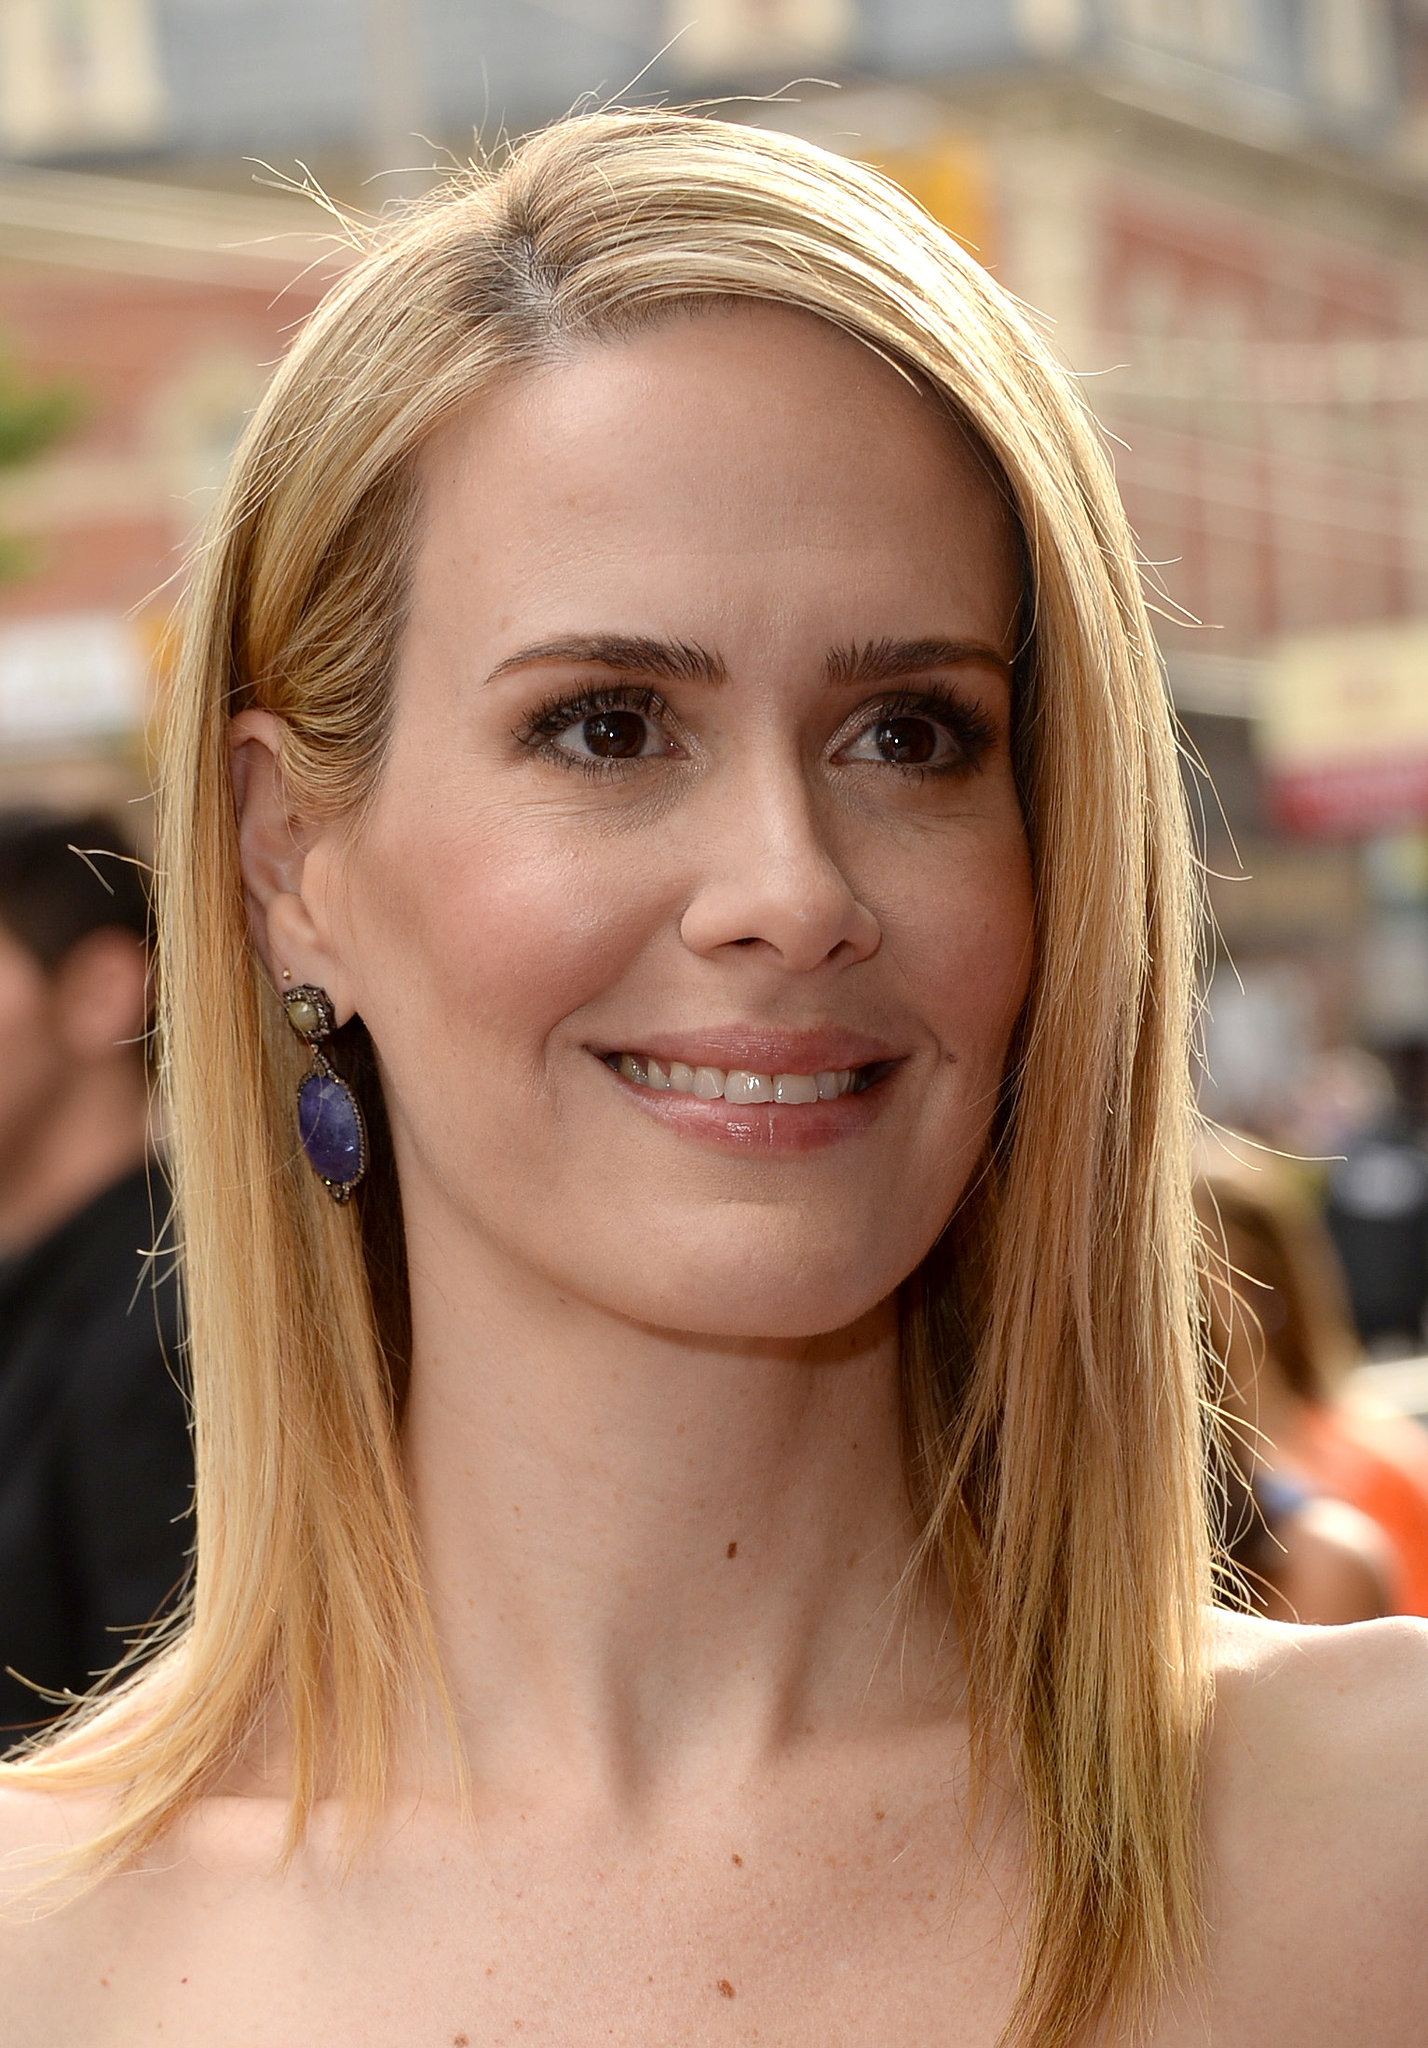 Sarah Paulson flashed a warm smile at the 12 Years a Slave premiere at the 2013 Toronto International Film Festival.